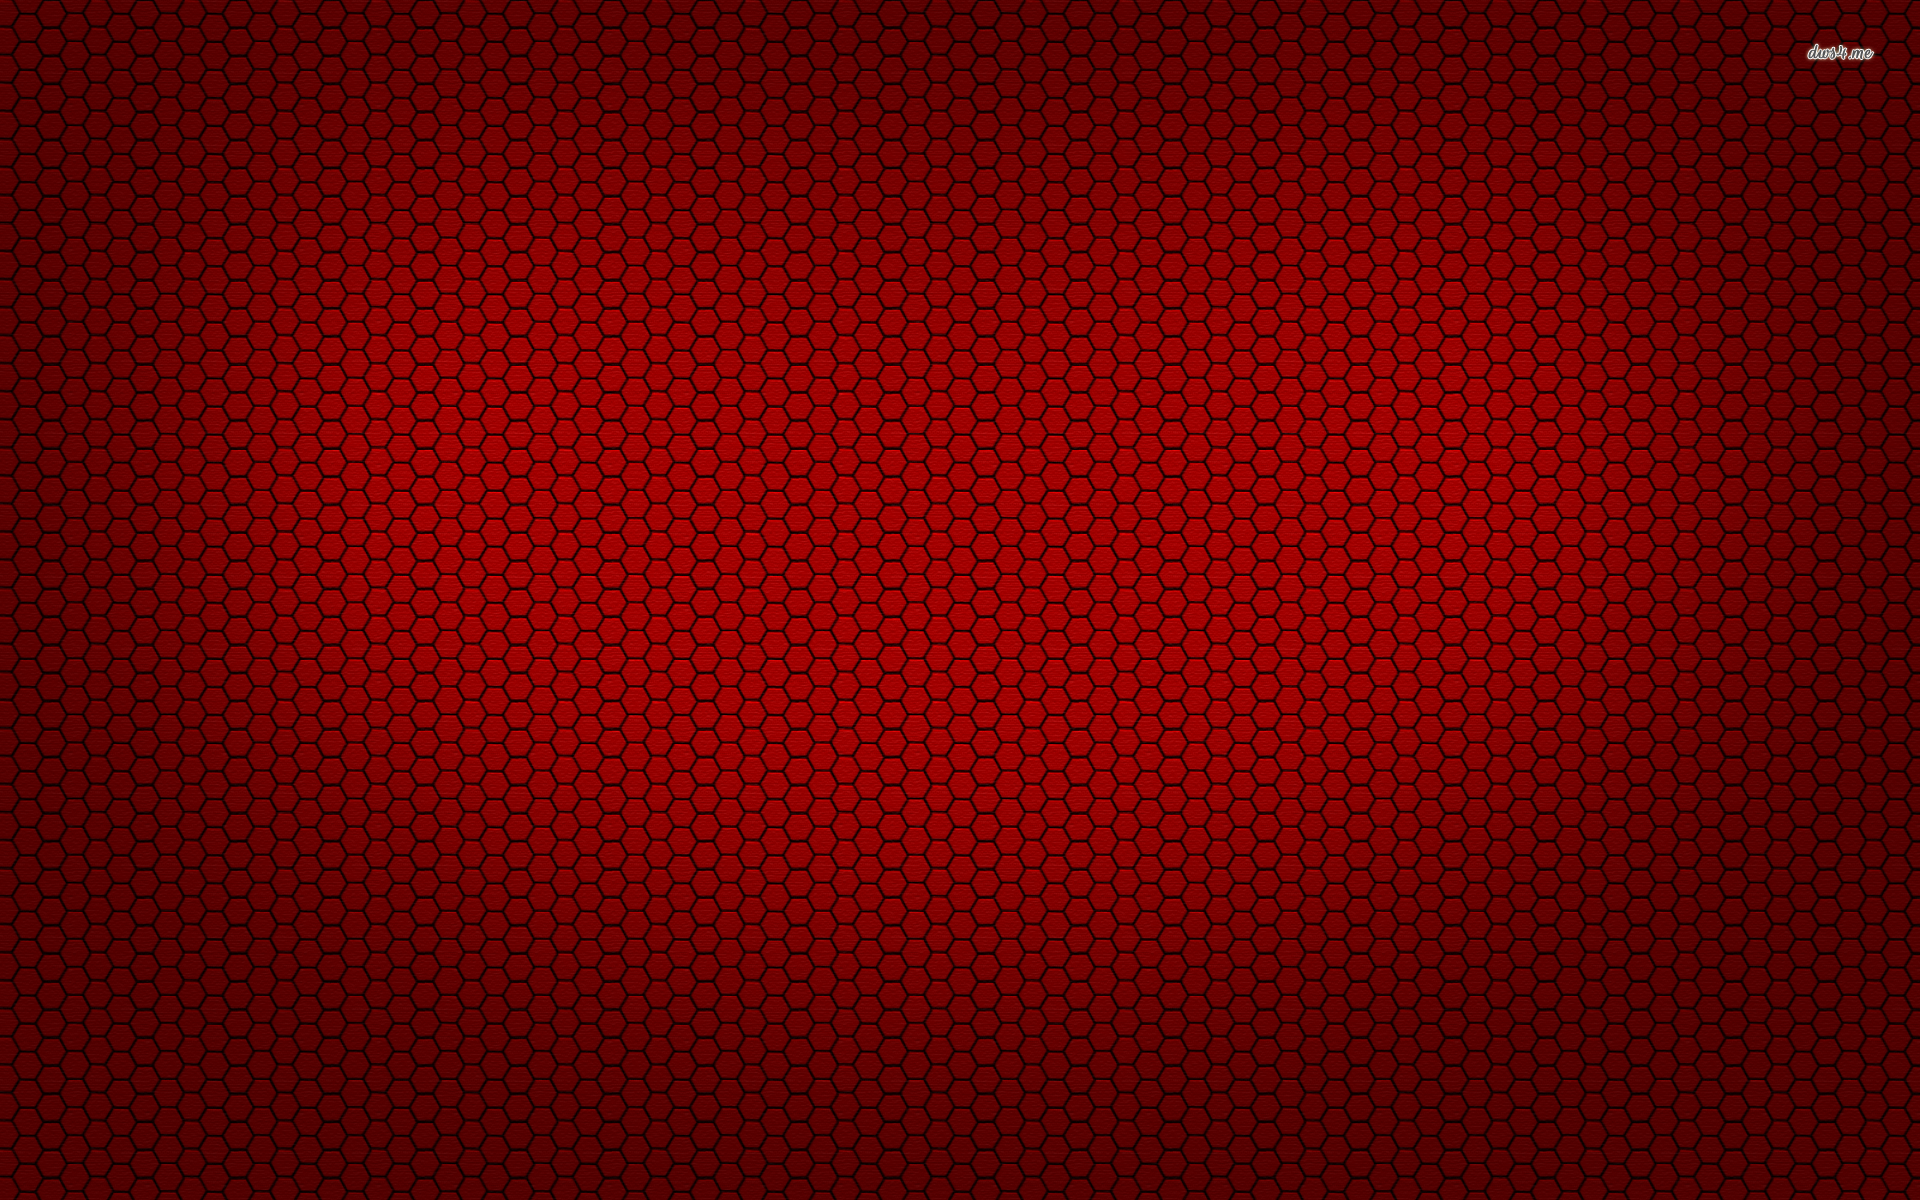 Honeycomb wallpapers background images page 6 - Honeycomb Wallpapers Background Images Page 6 15